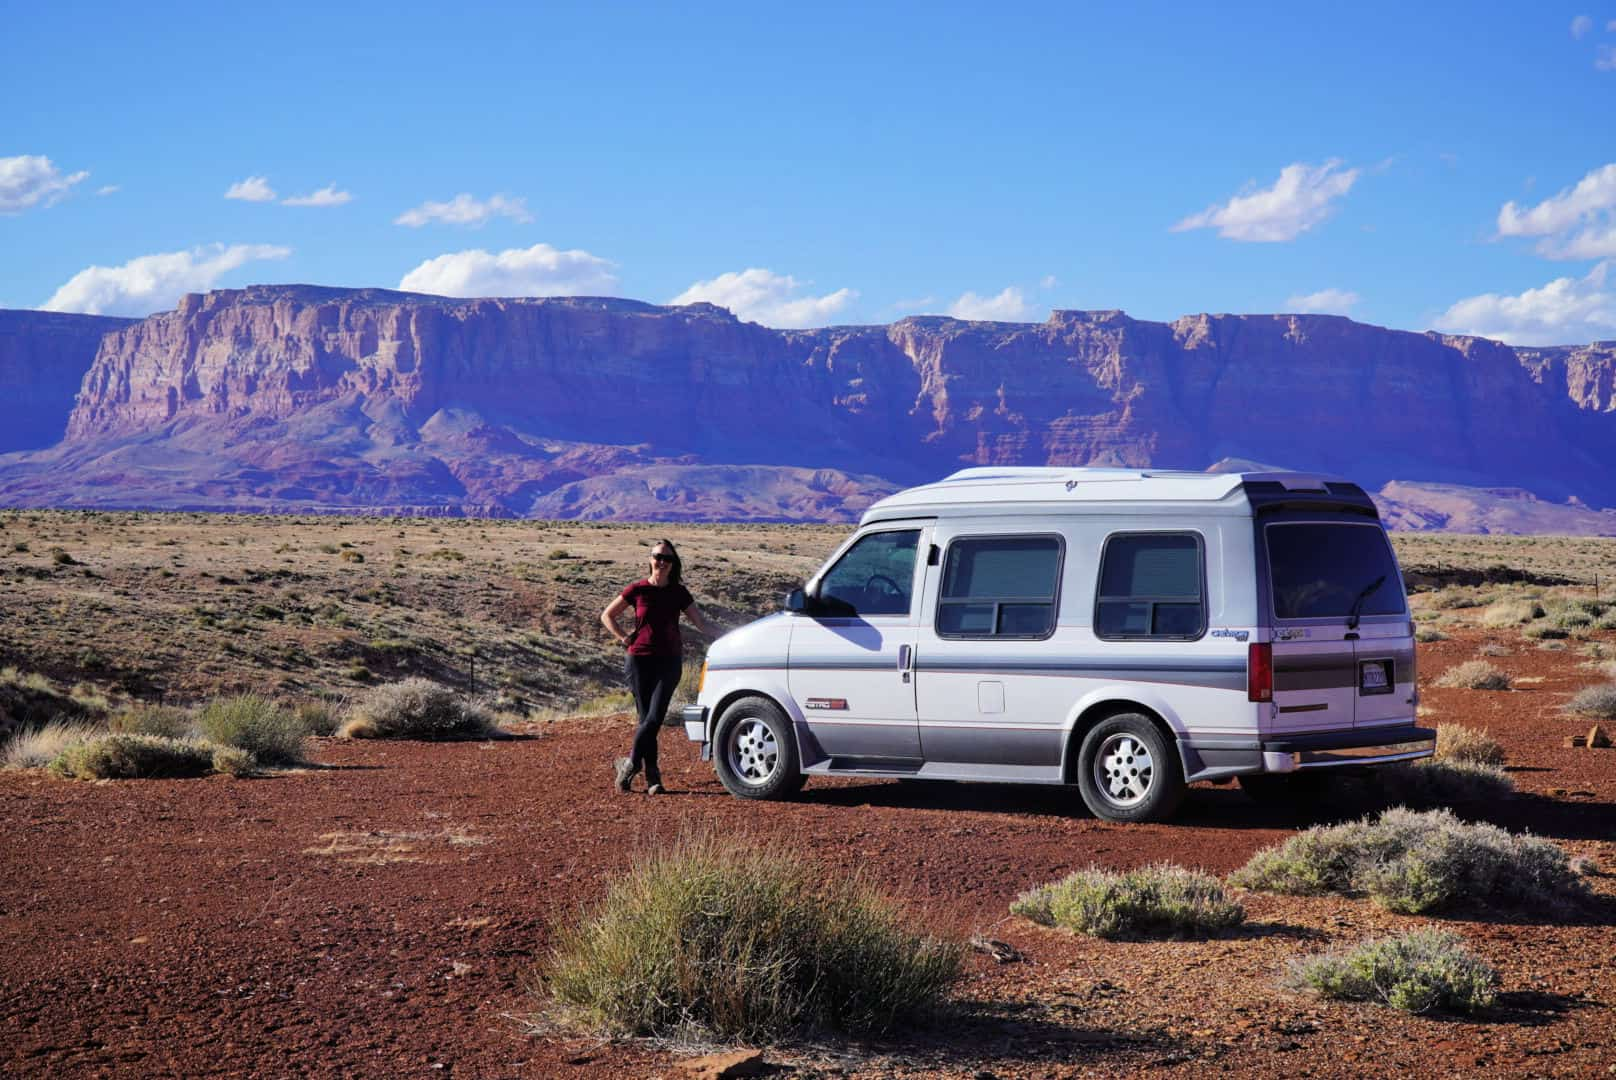 Kristin and her Chevy astro in Arizona, where she does freelance remote work from anywhere